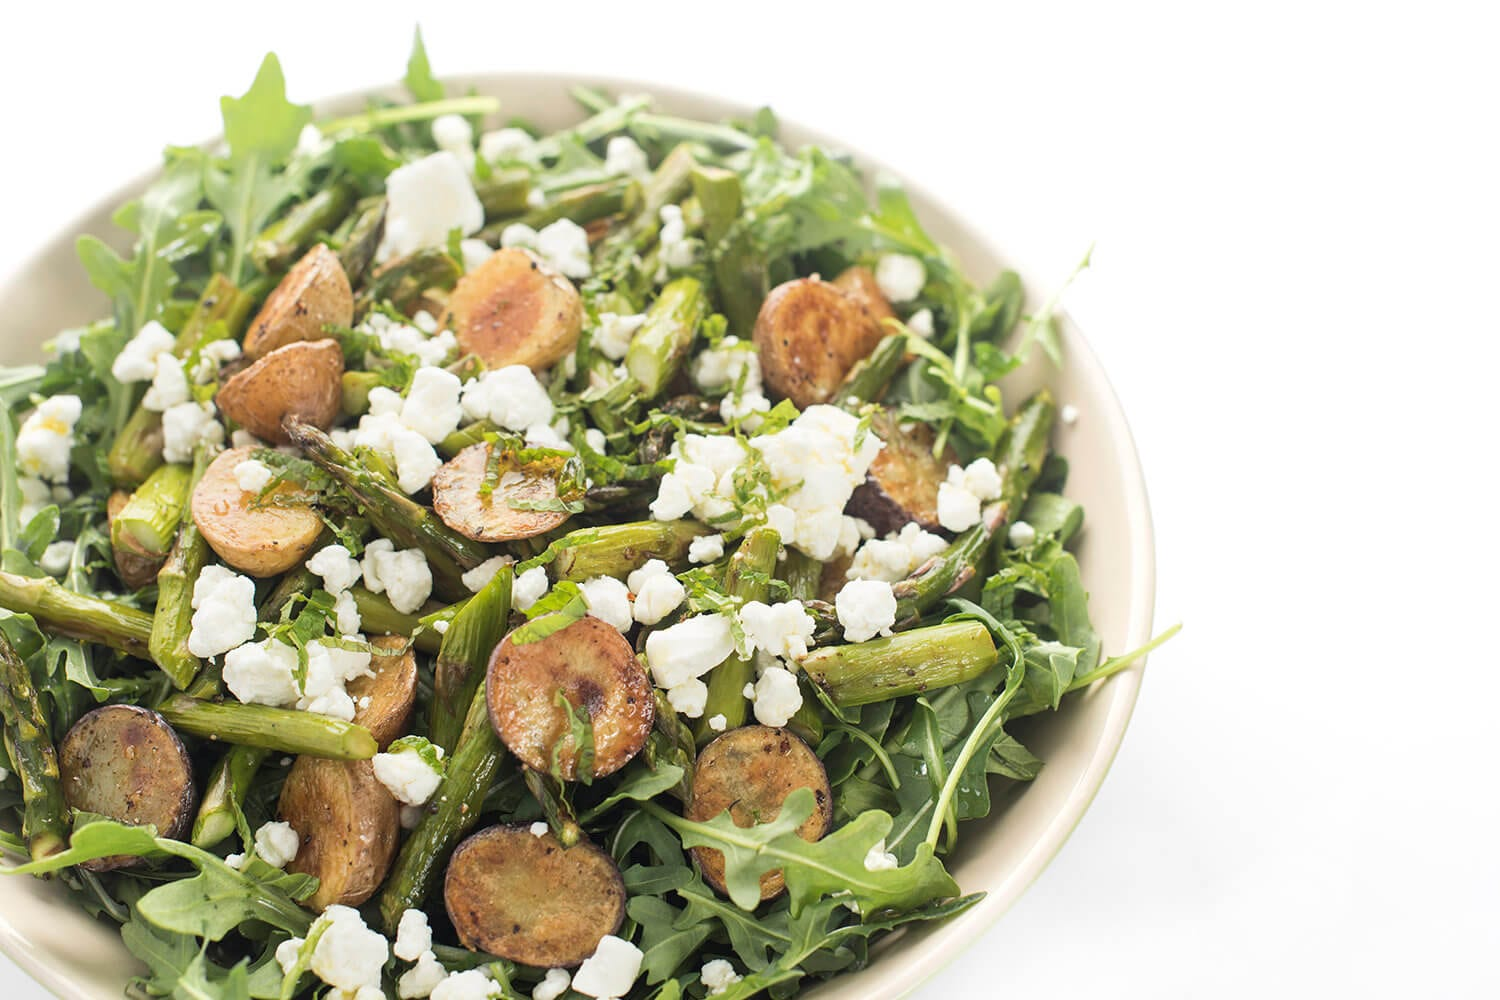 Arugula Salad with Roasted Potatoes, Asparagus, and Goat Cheese